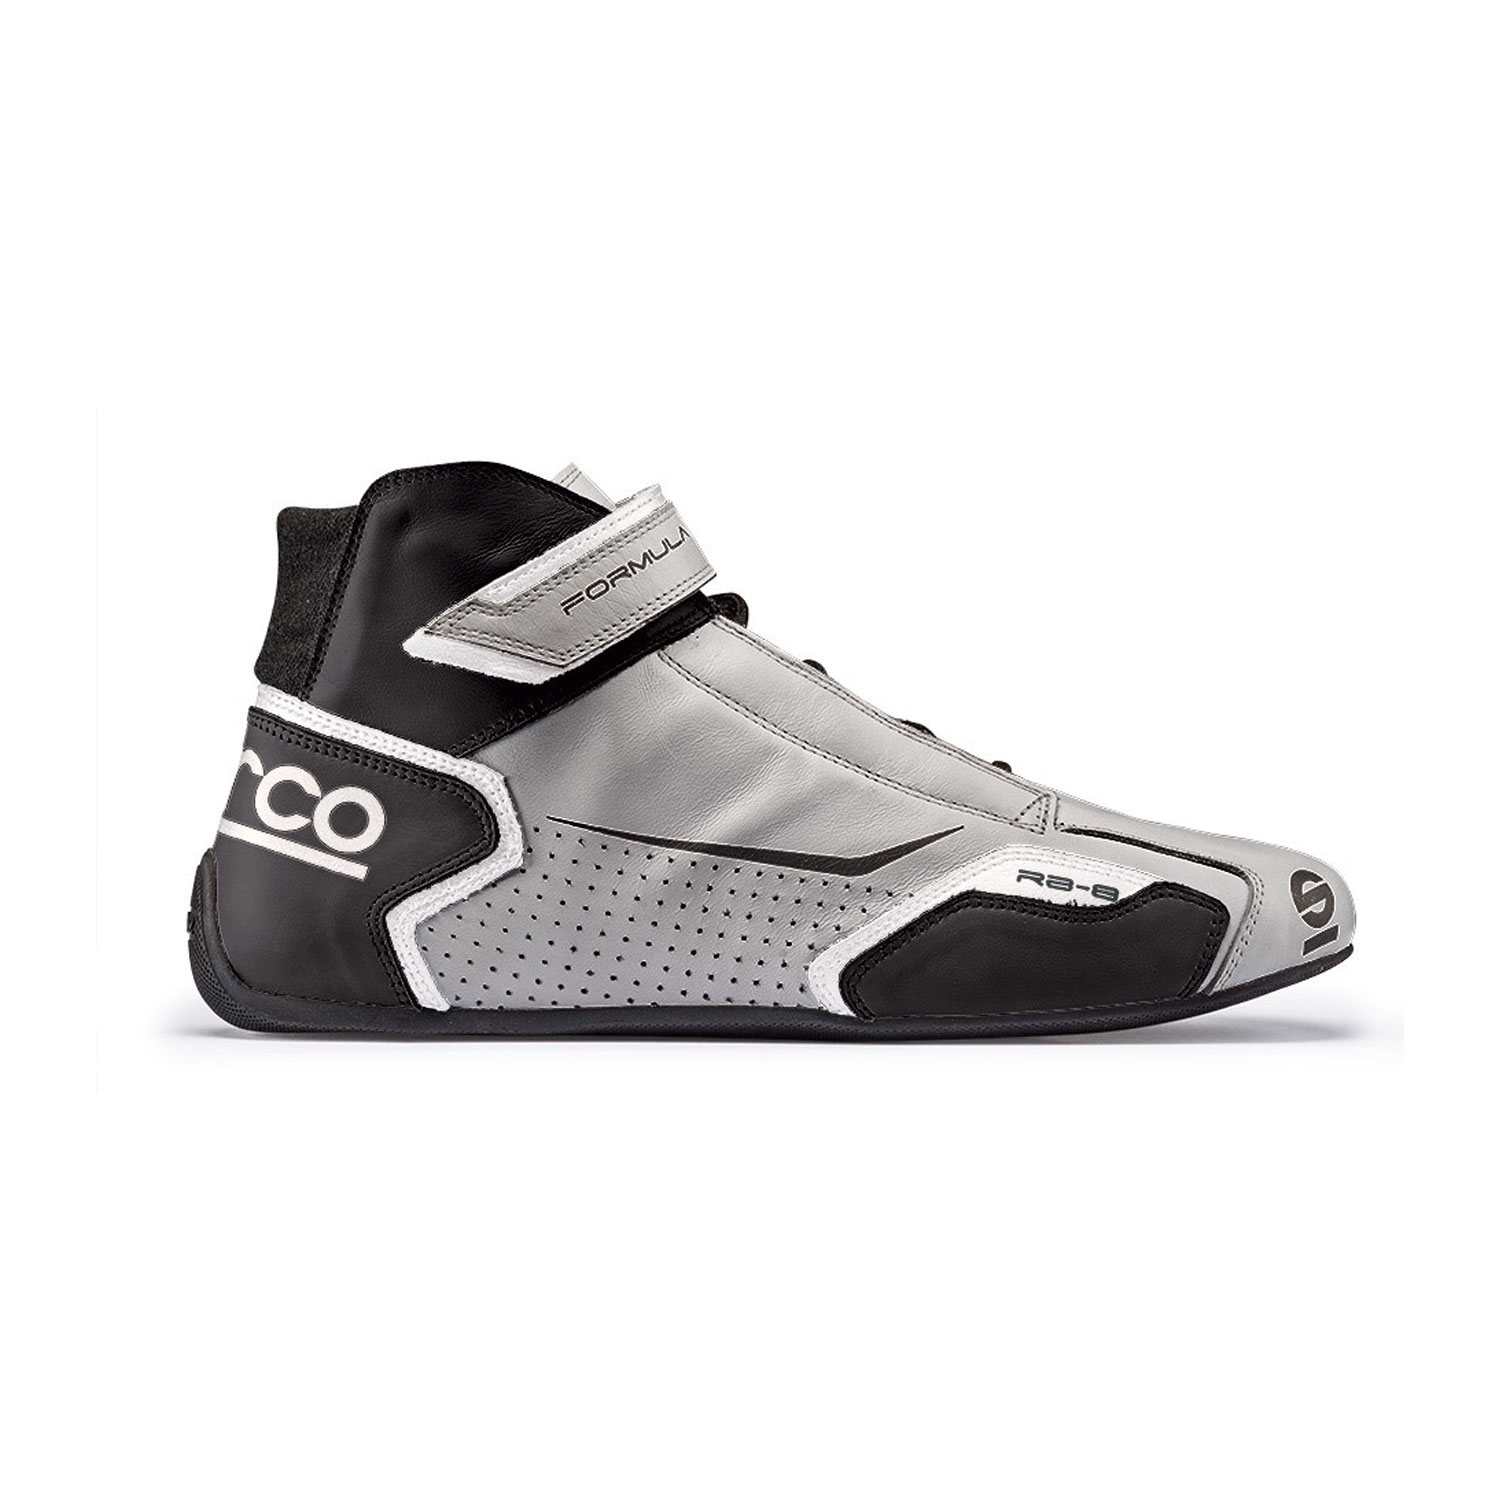 Sparco Italy FORMULA RB-8 Grey Racing Shoes (with FIA